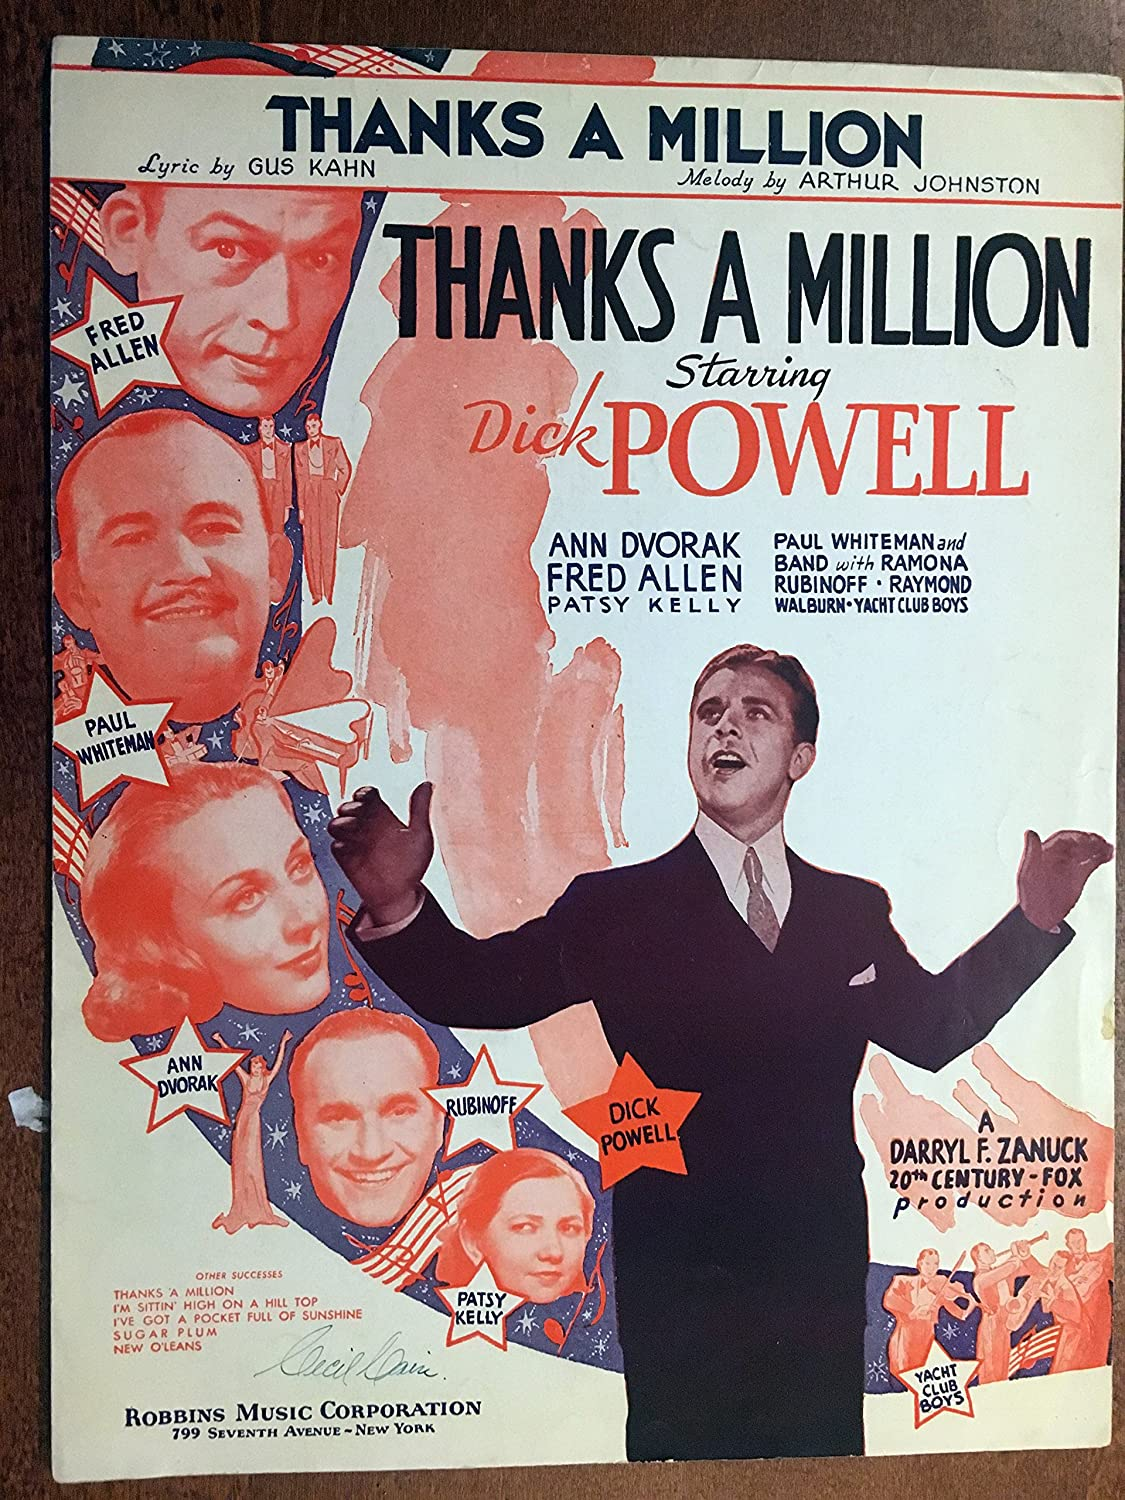 Amazon.com: THANKS A MILLION (Arthur Johnston SHEET MUSIC) from ...